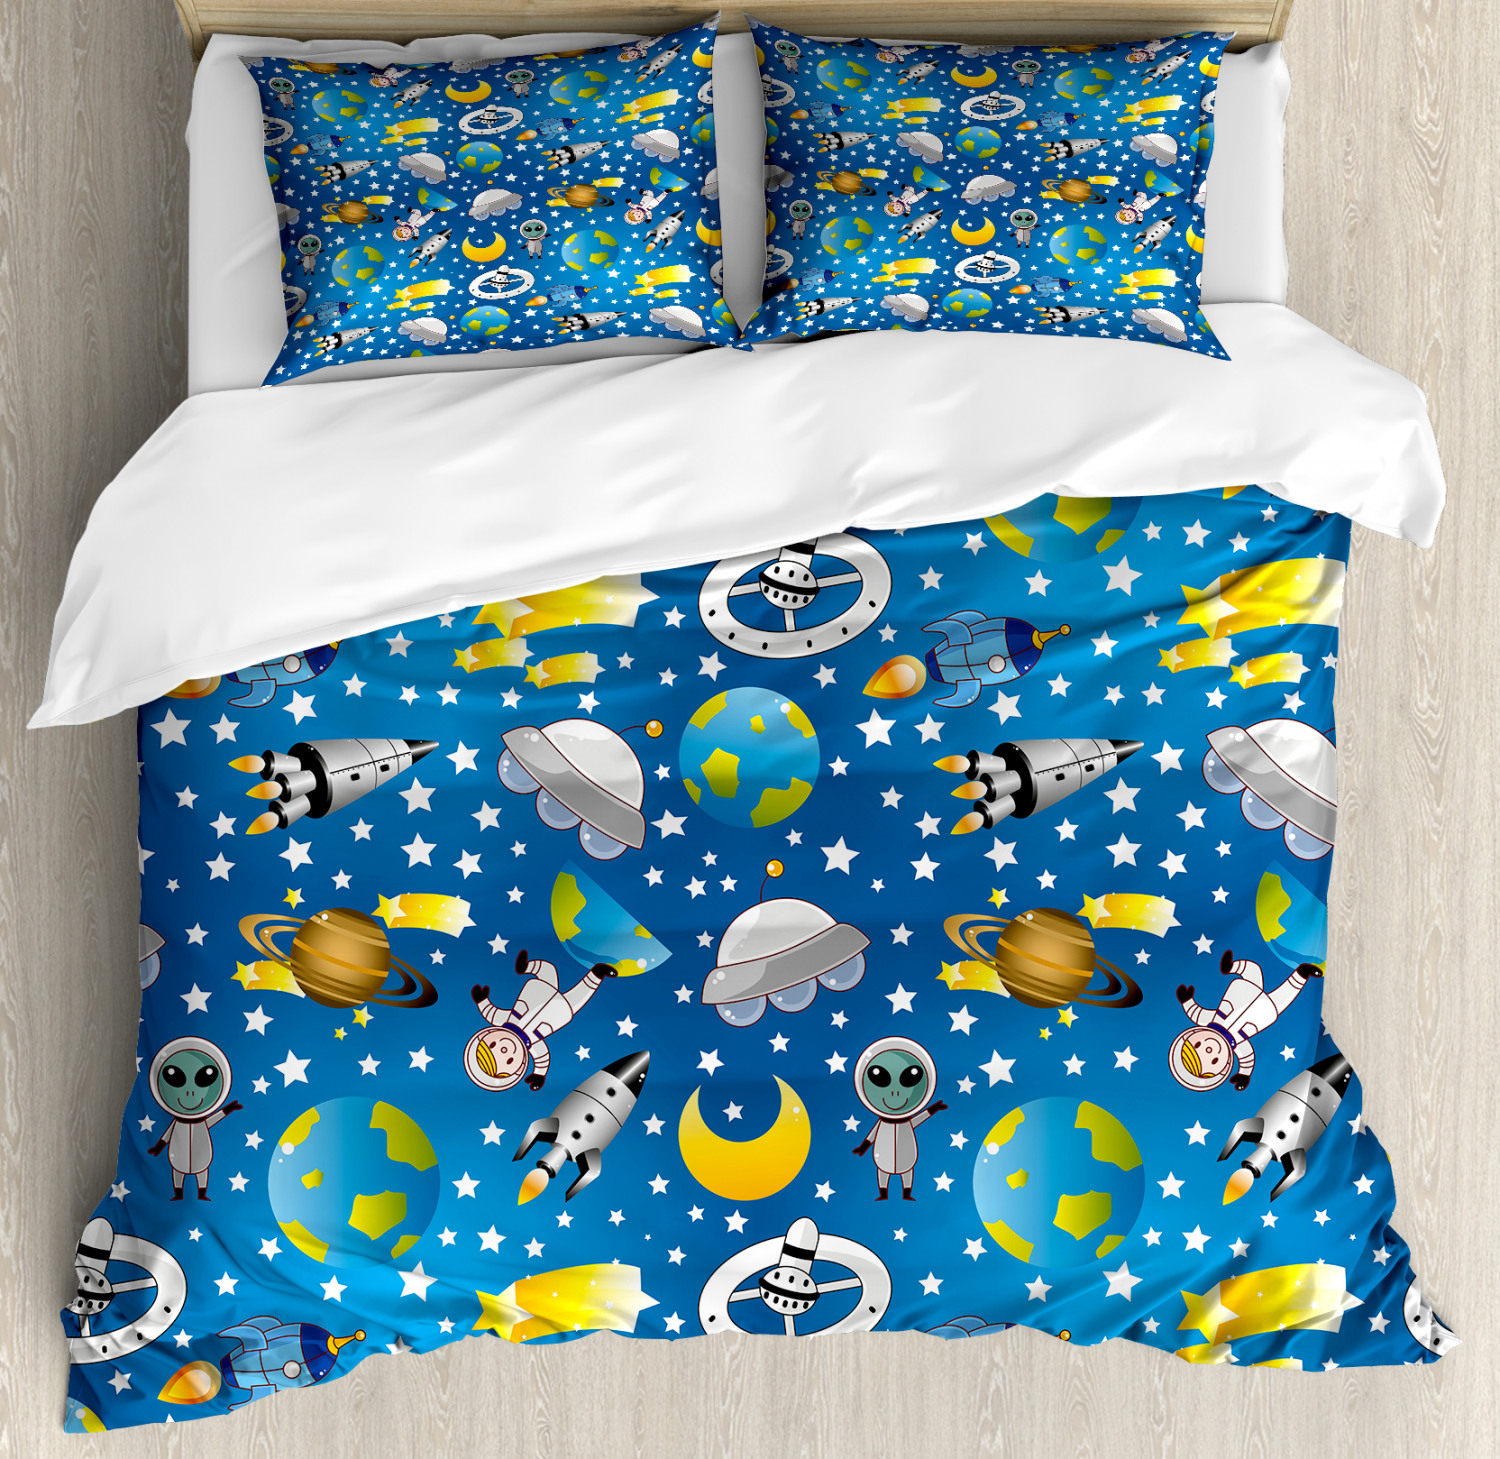 Space Duvet Cover Set with Pillow Shams Alien and Human Astronaut Print